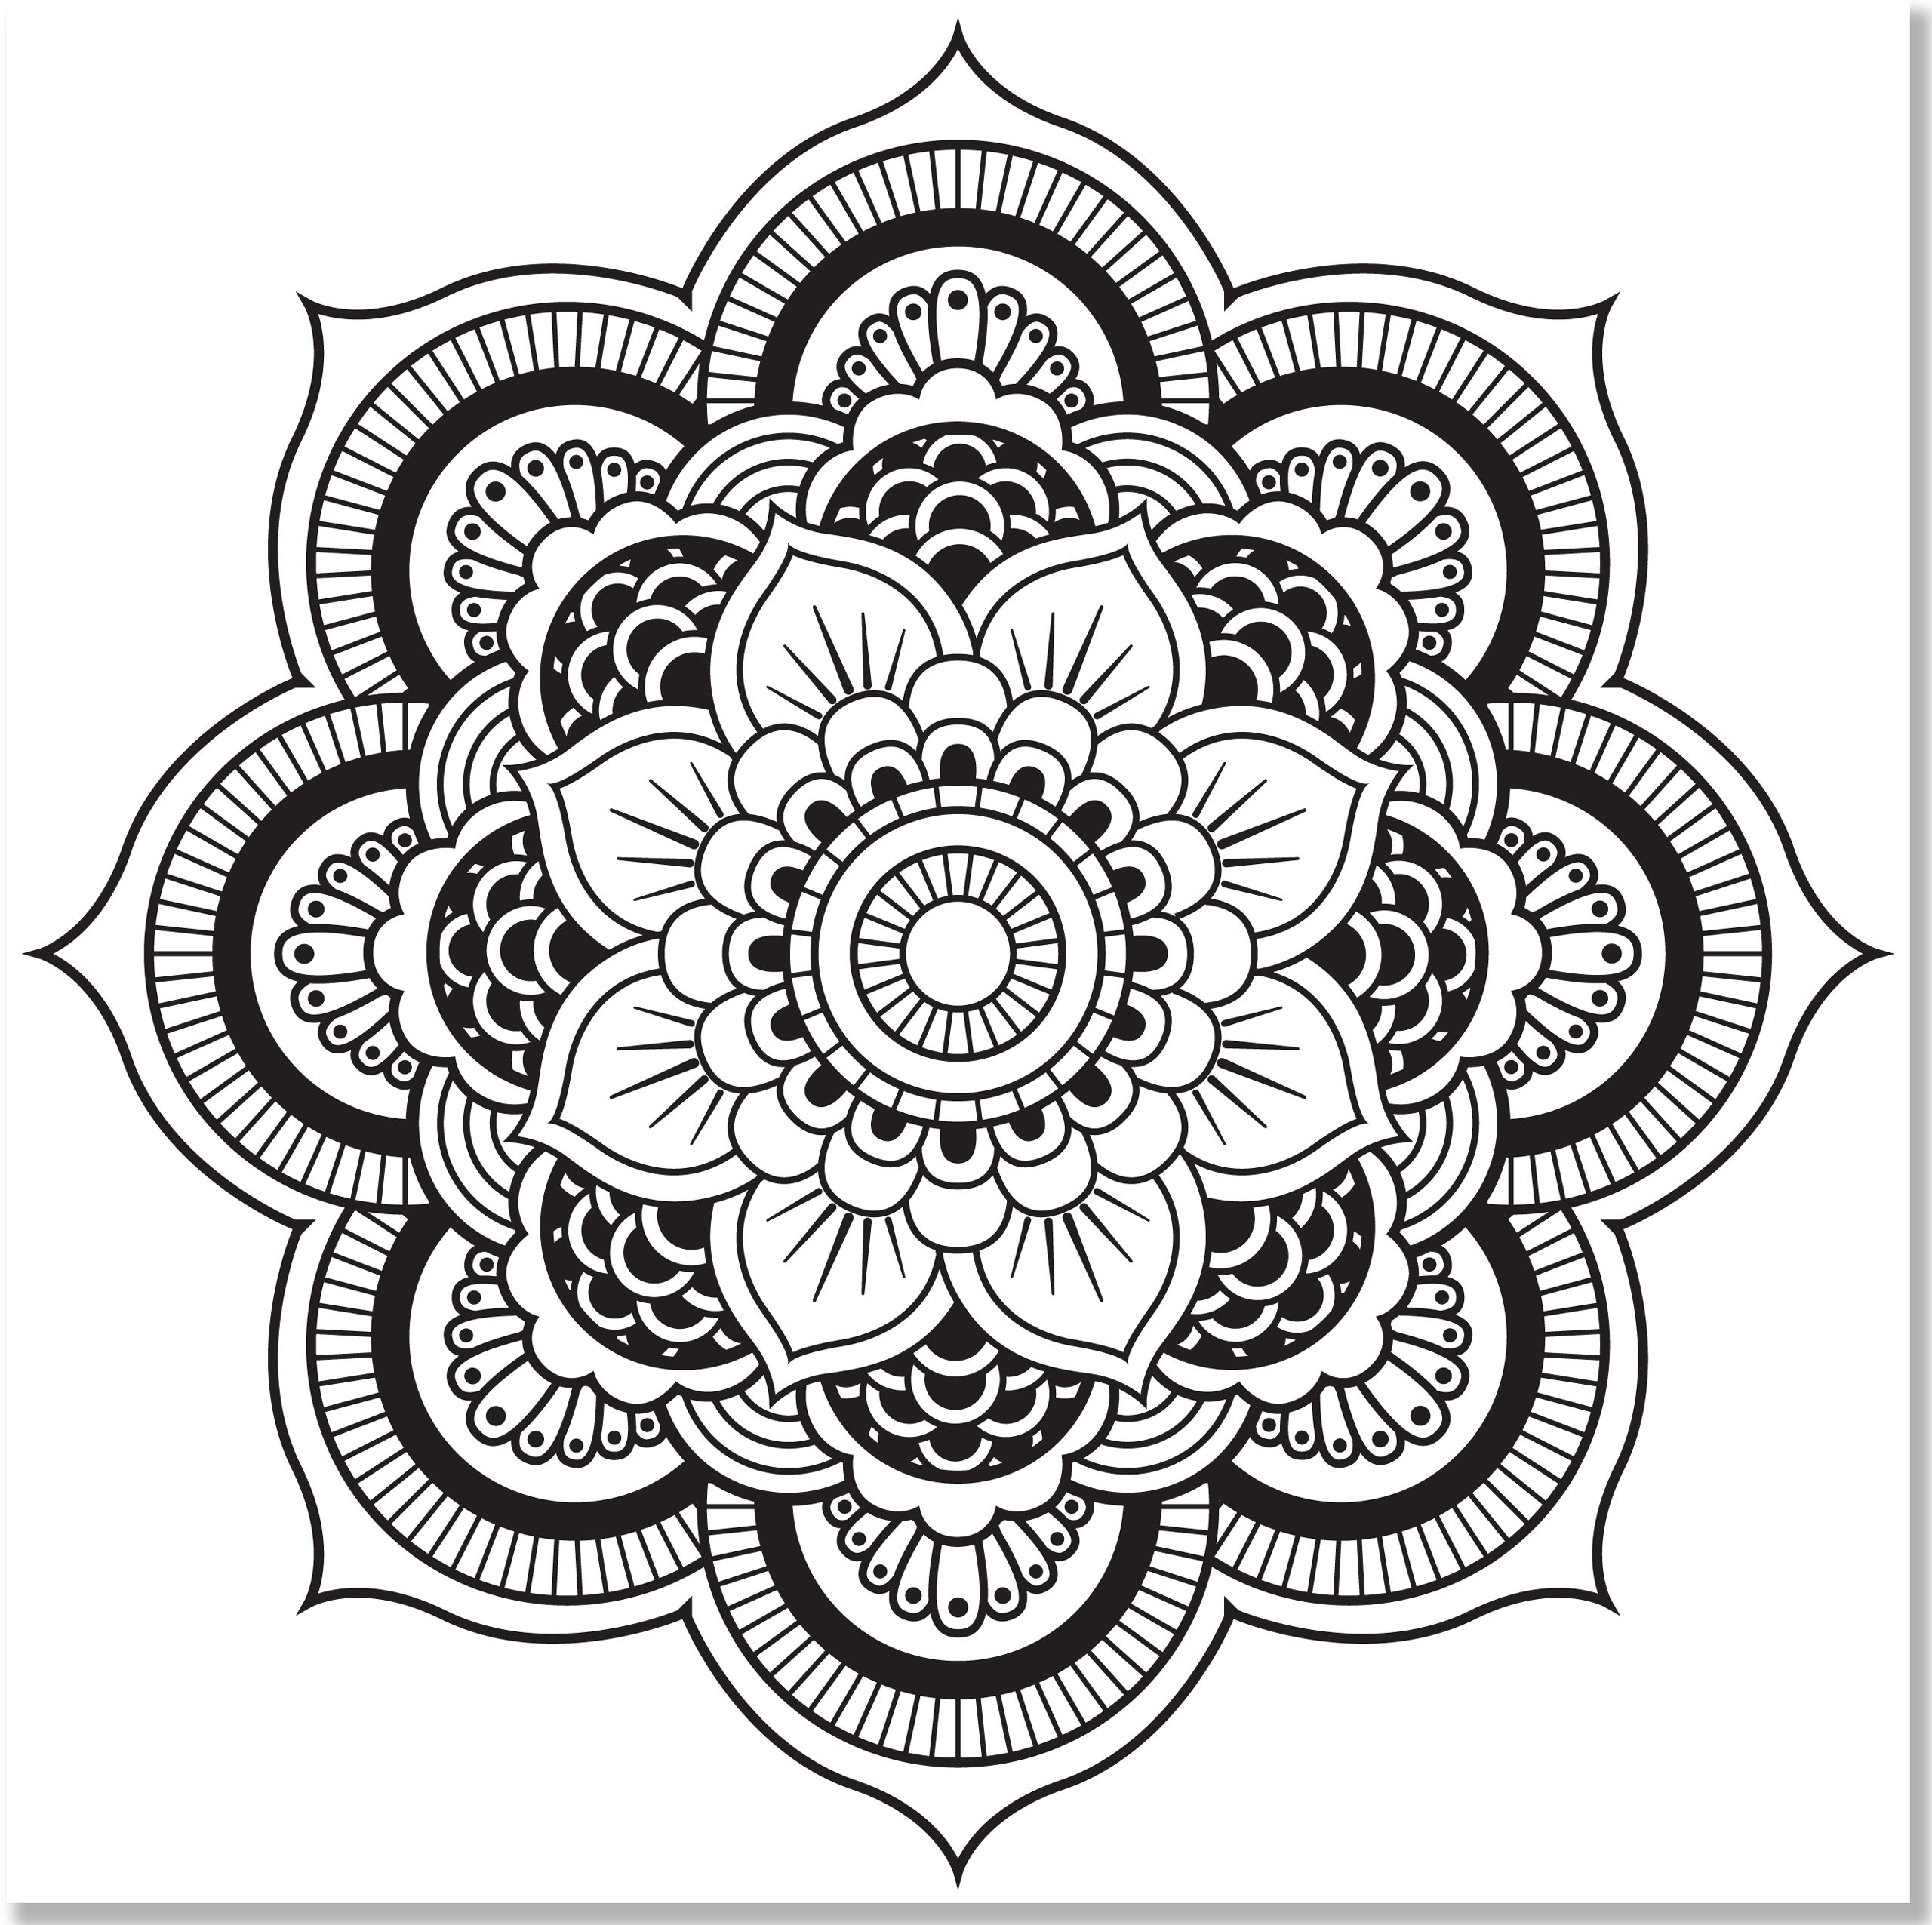 amazoncom mandala designs adult coloring book 31 stress relieving designs studio 9781441317445 peter pauper press books